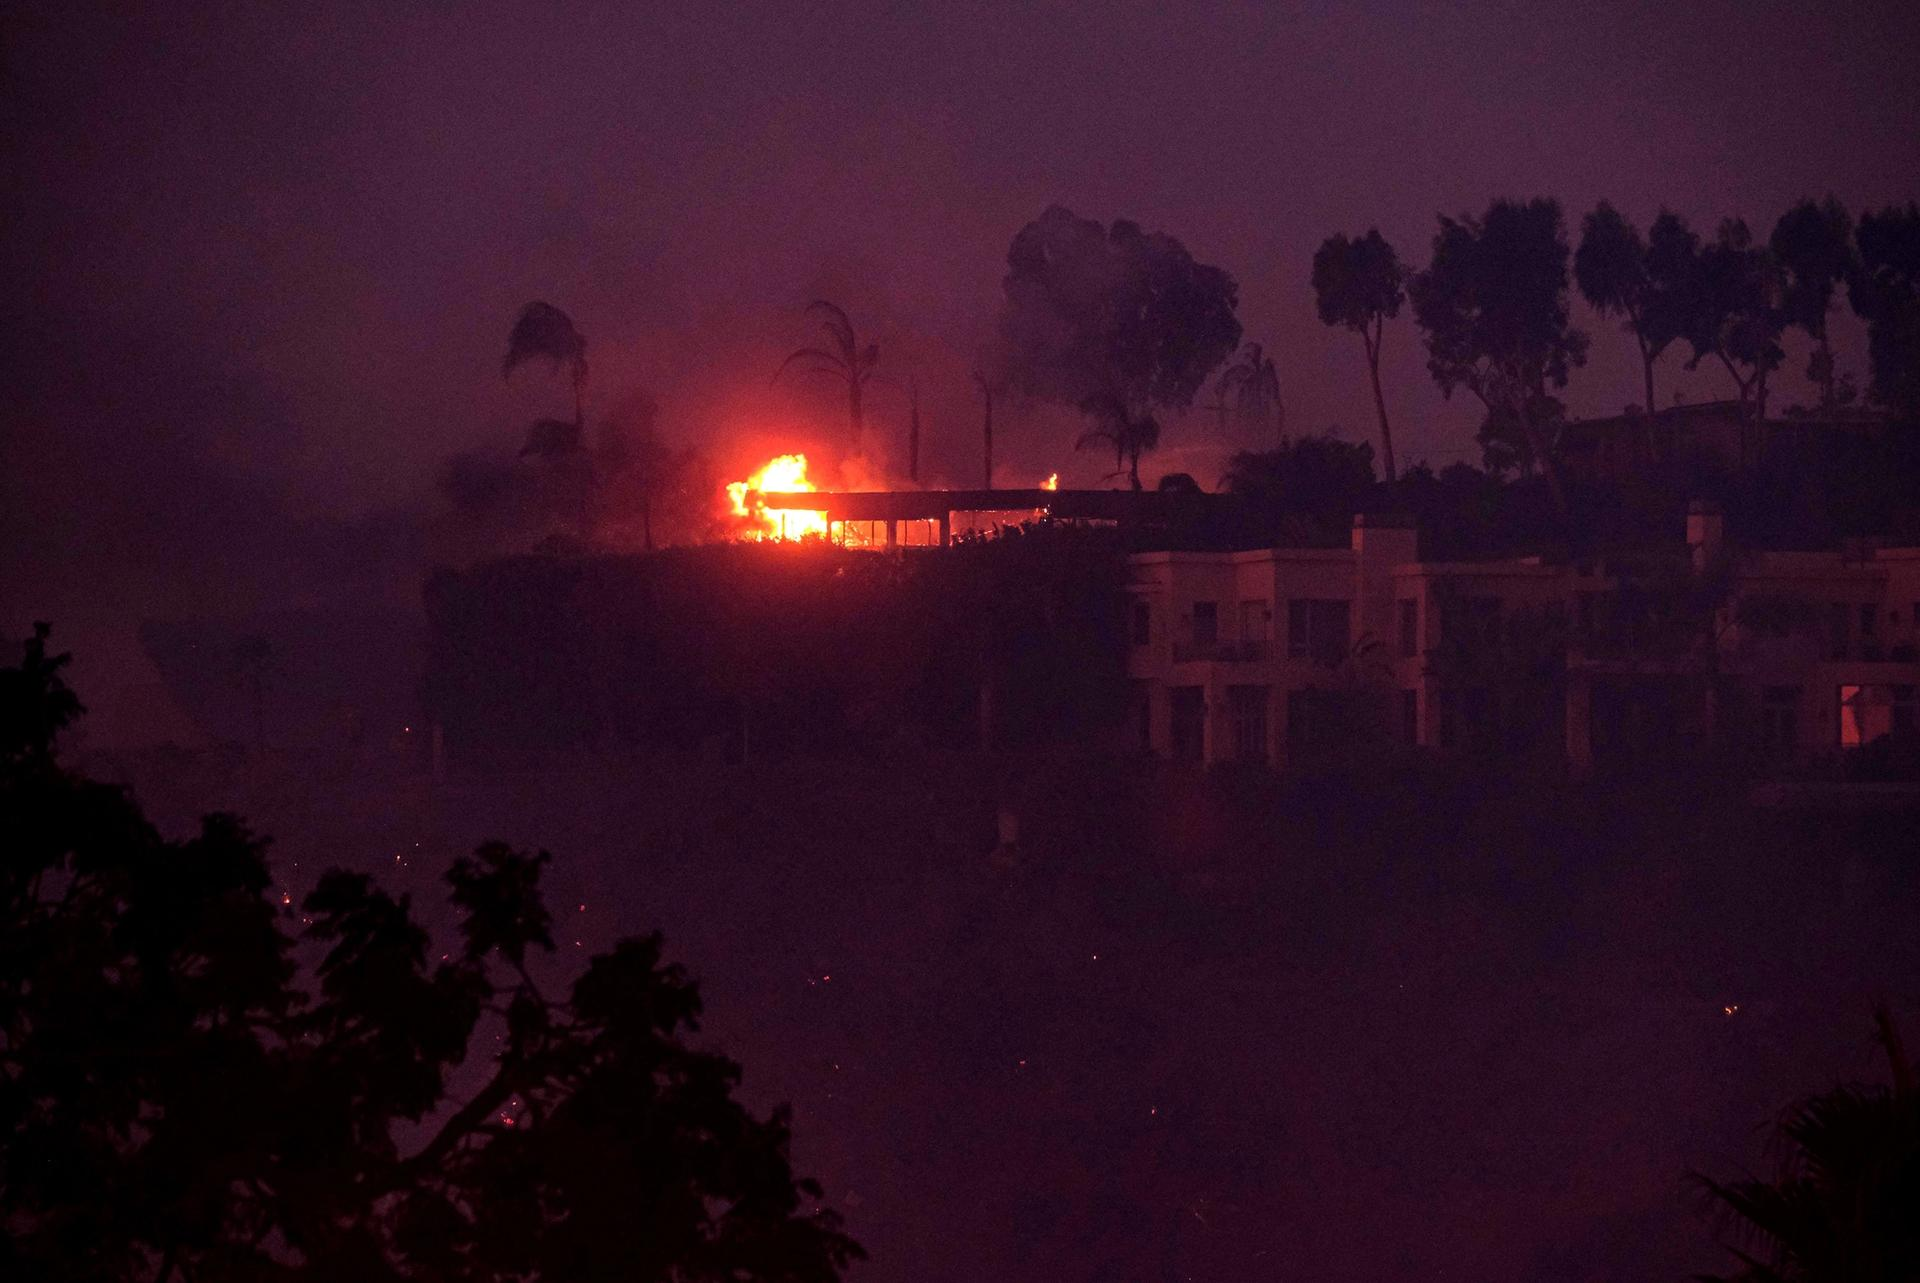 Wildfires burn near the 405 freeway and the Getty Center in Los Angeles on 30 October. Jason Ryan/ ZUMA Wire/ Shutterstock